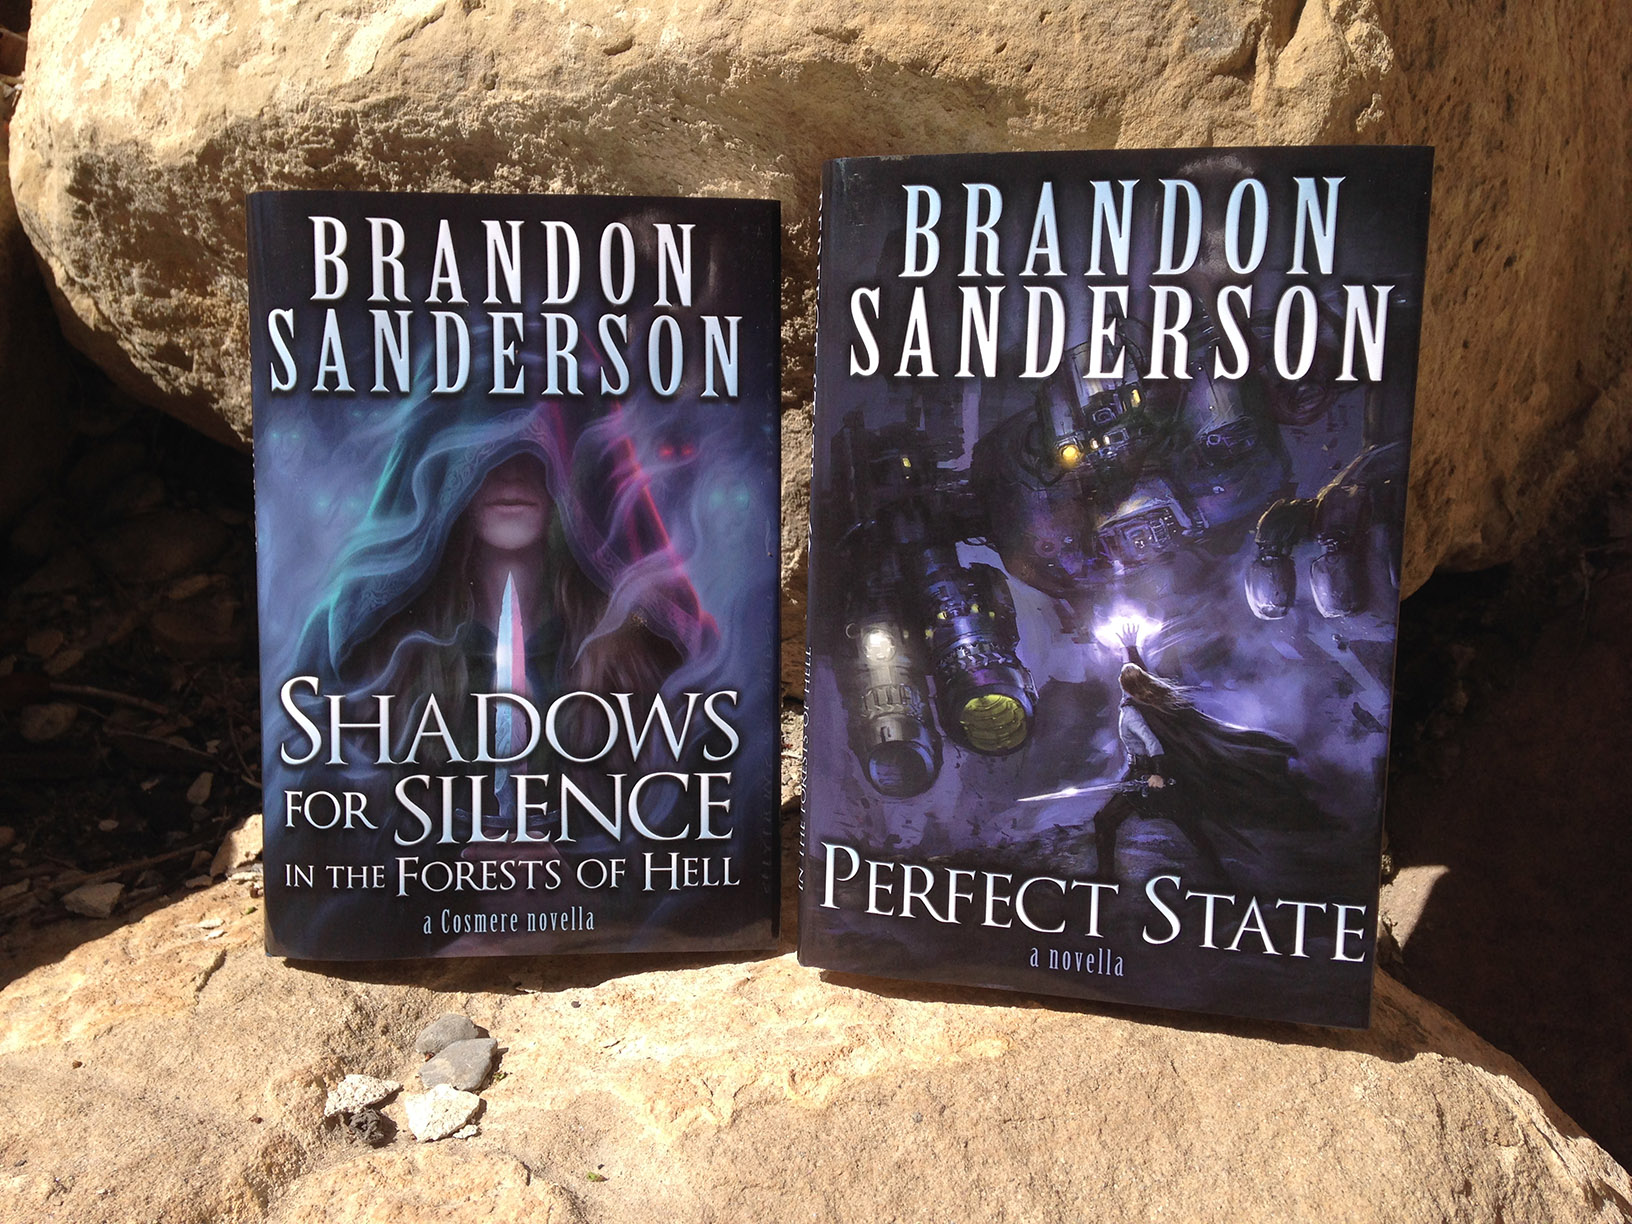 Shadows for Silence in the Forests of Hell + Perfect State double hardcover